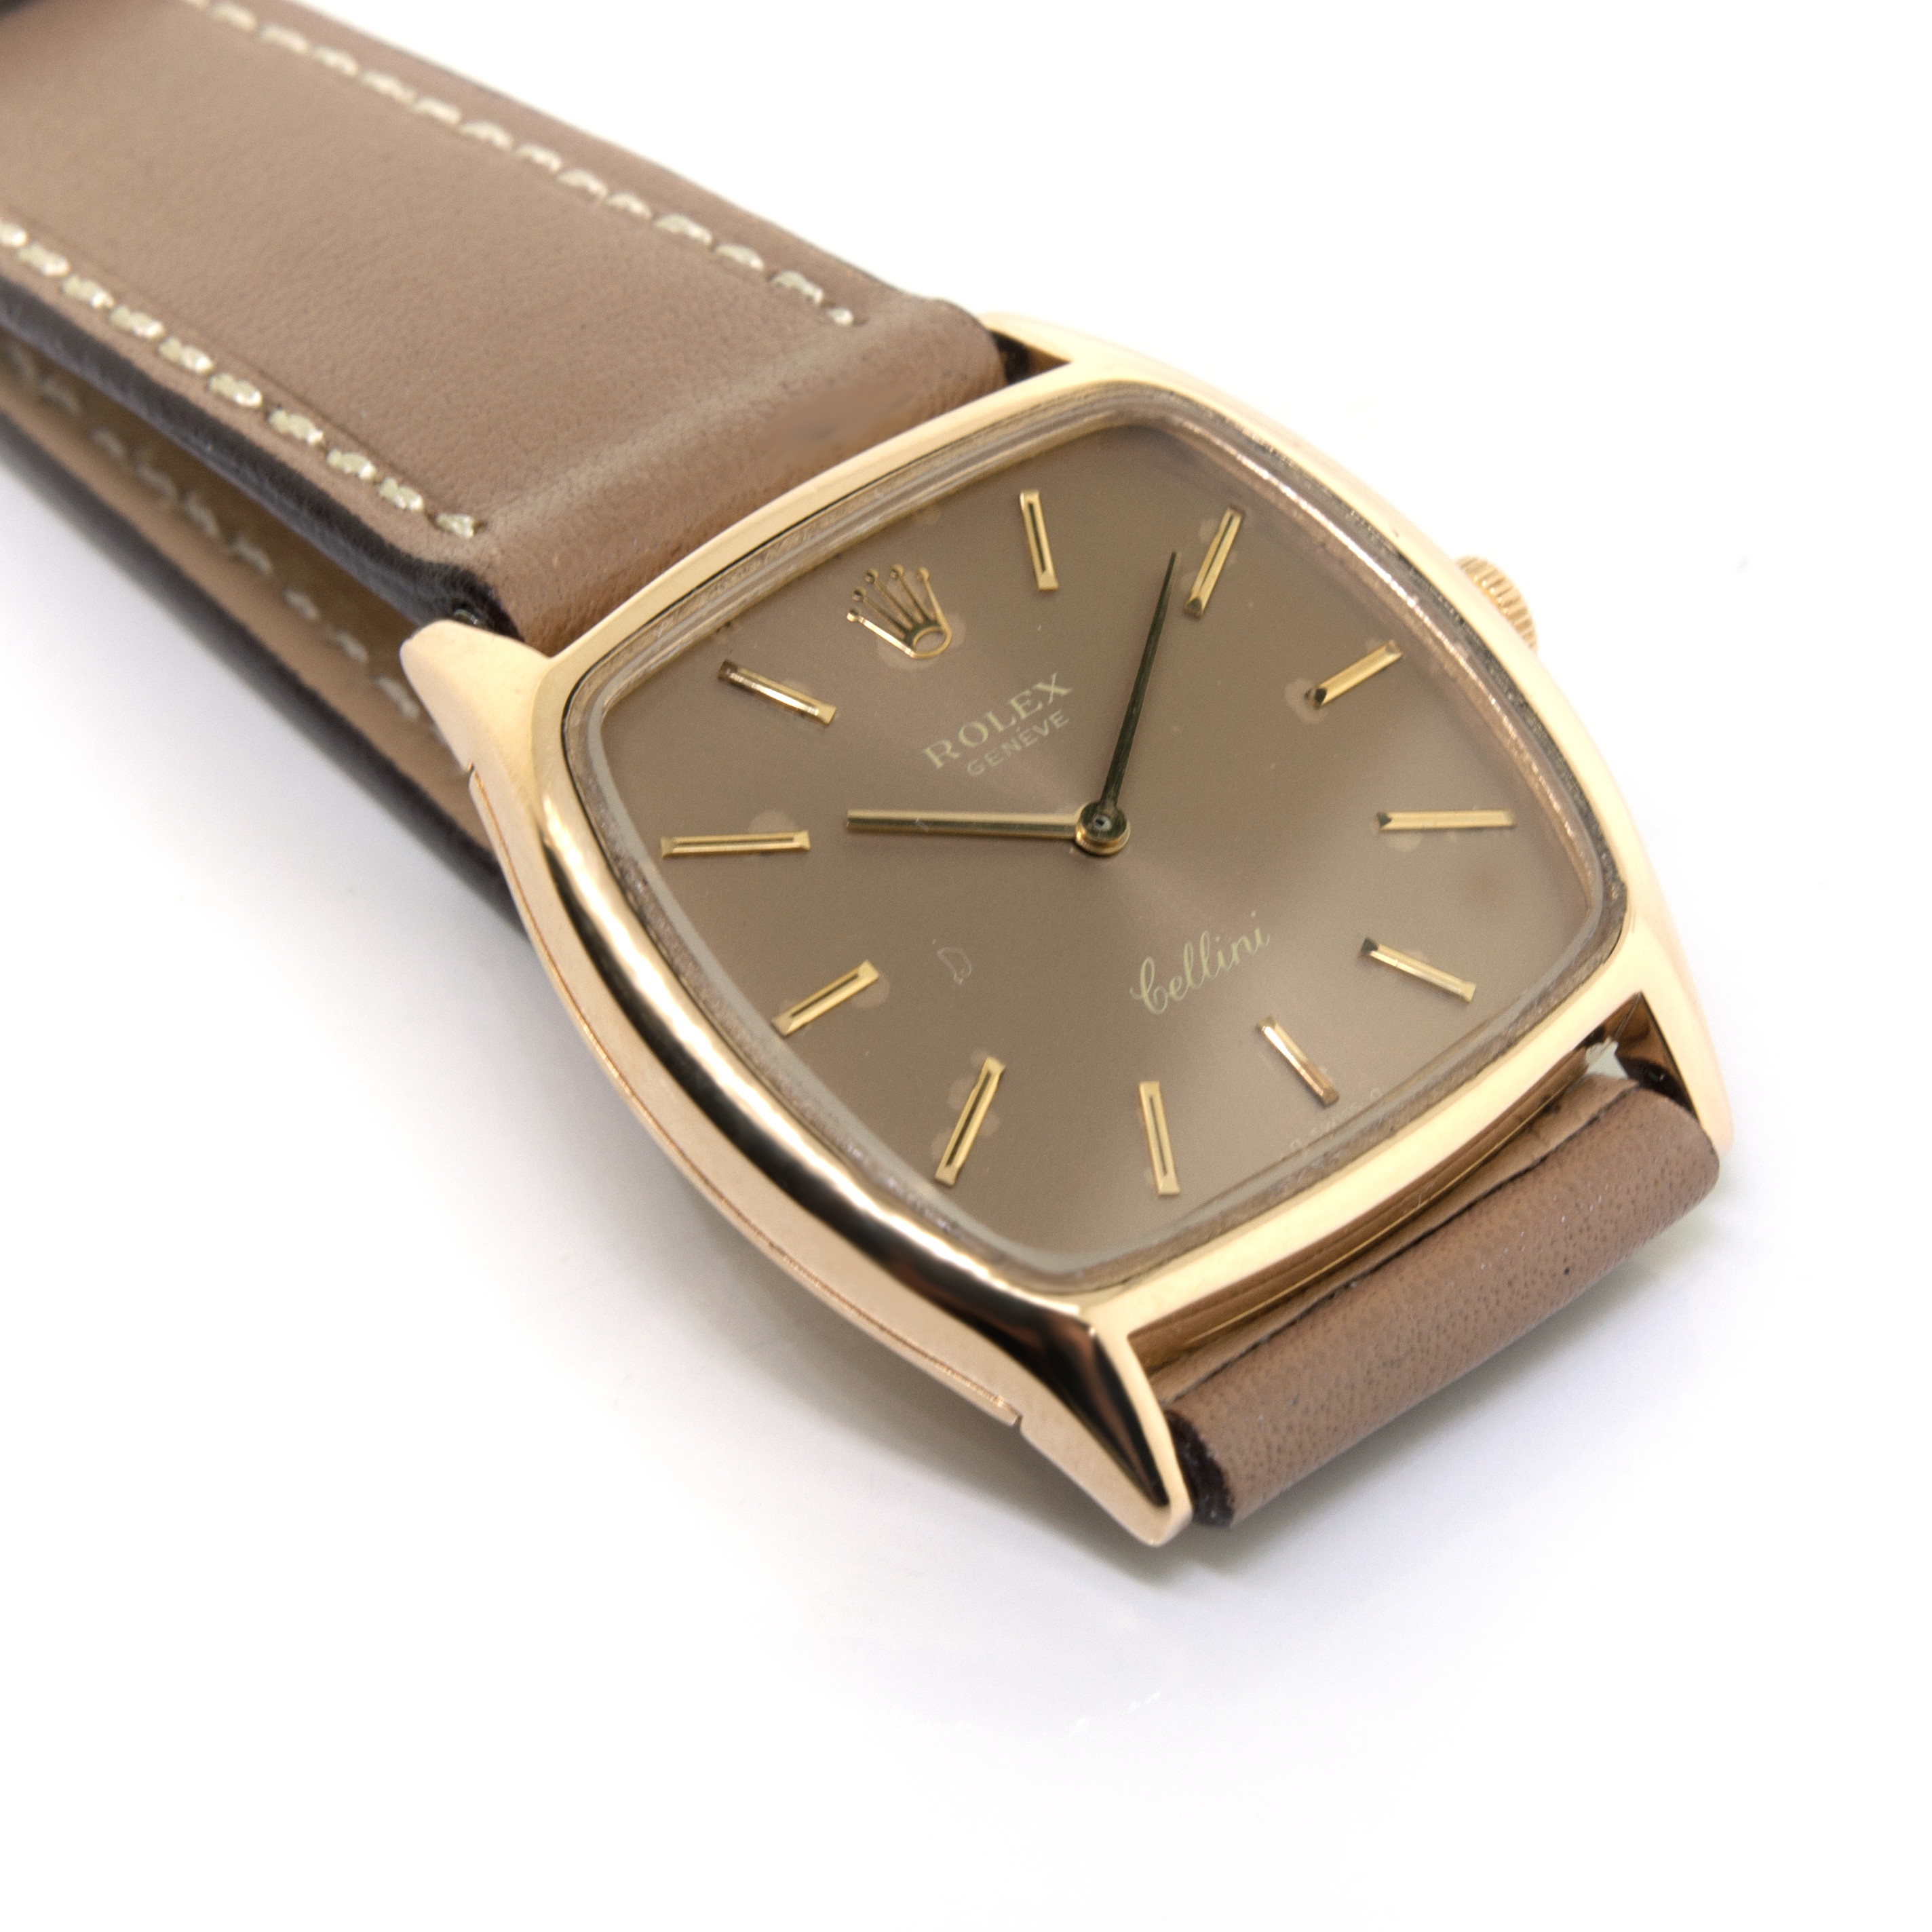 Rolex Cellini 18K yellow gold watch